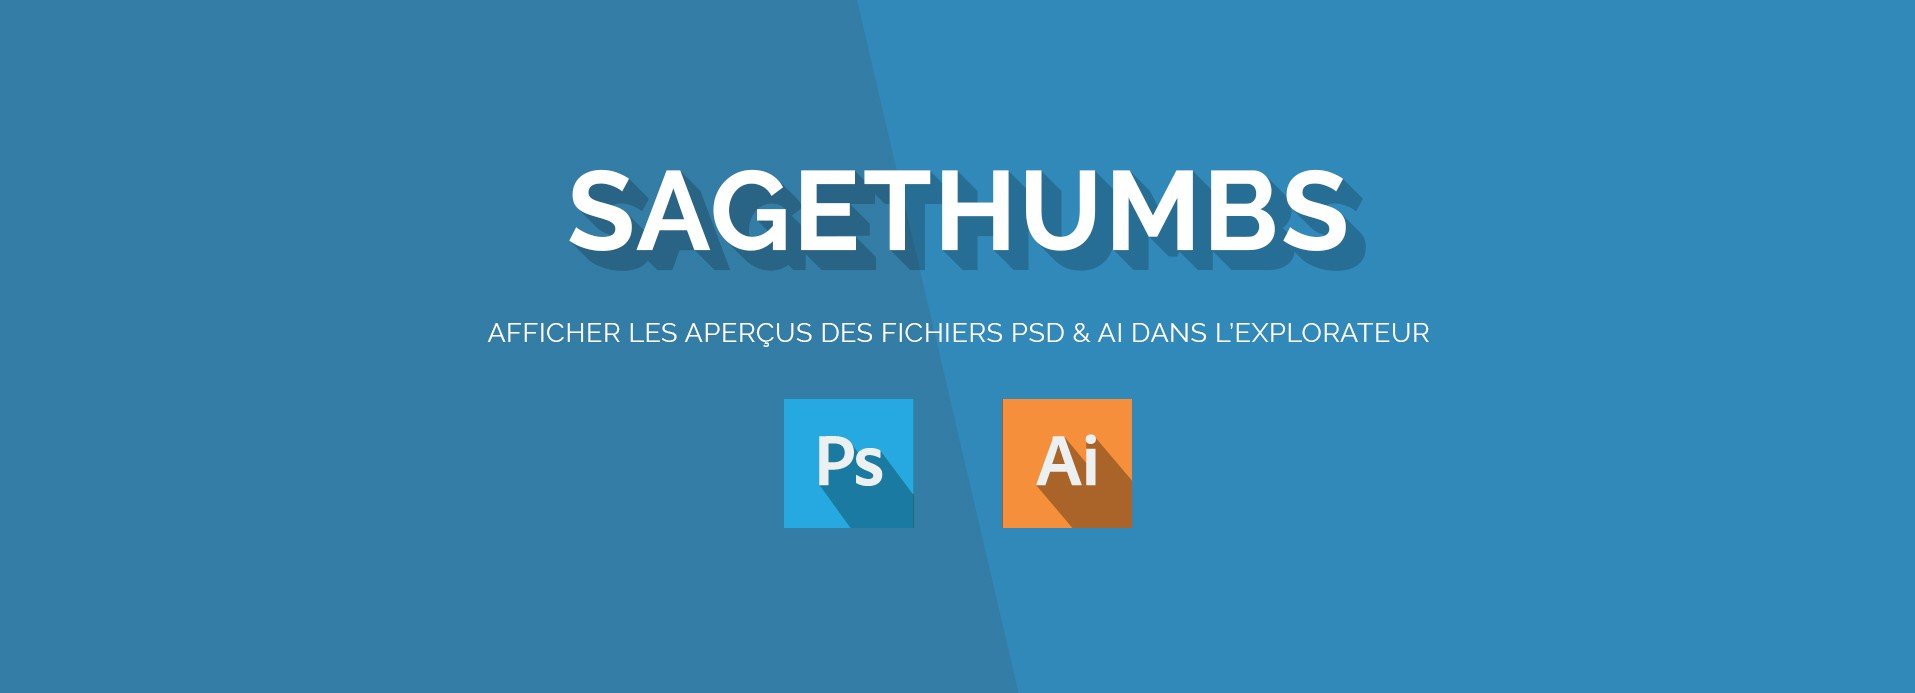 sagethumbs-header-1400x480@2x